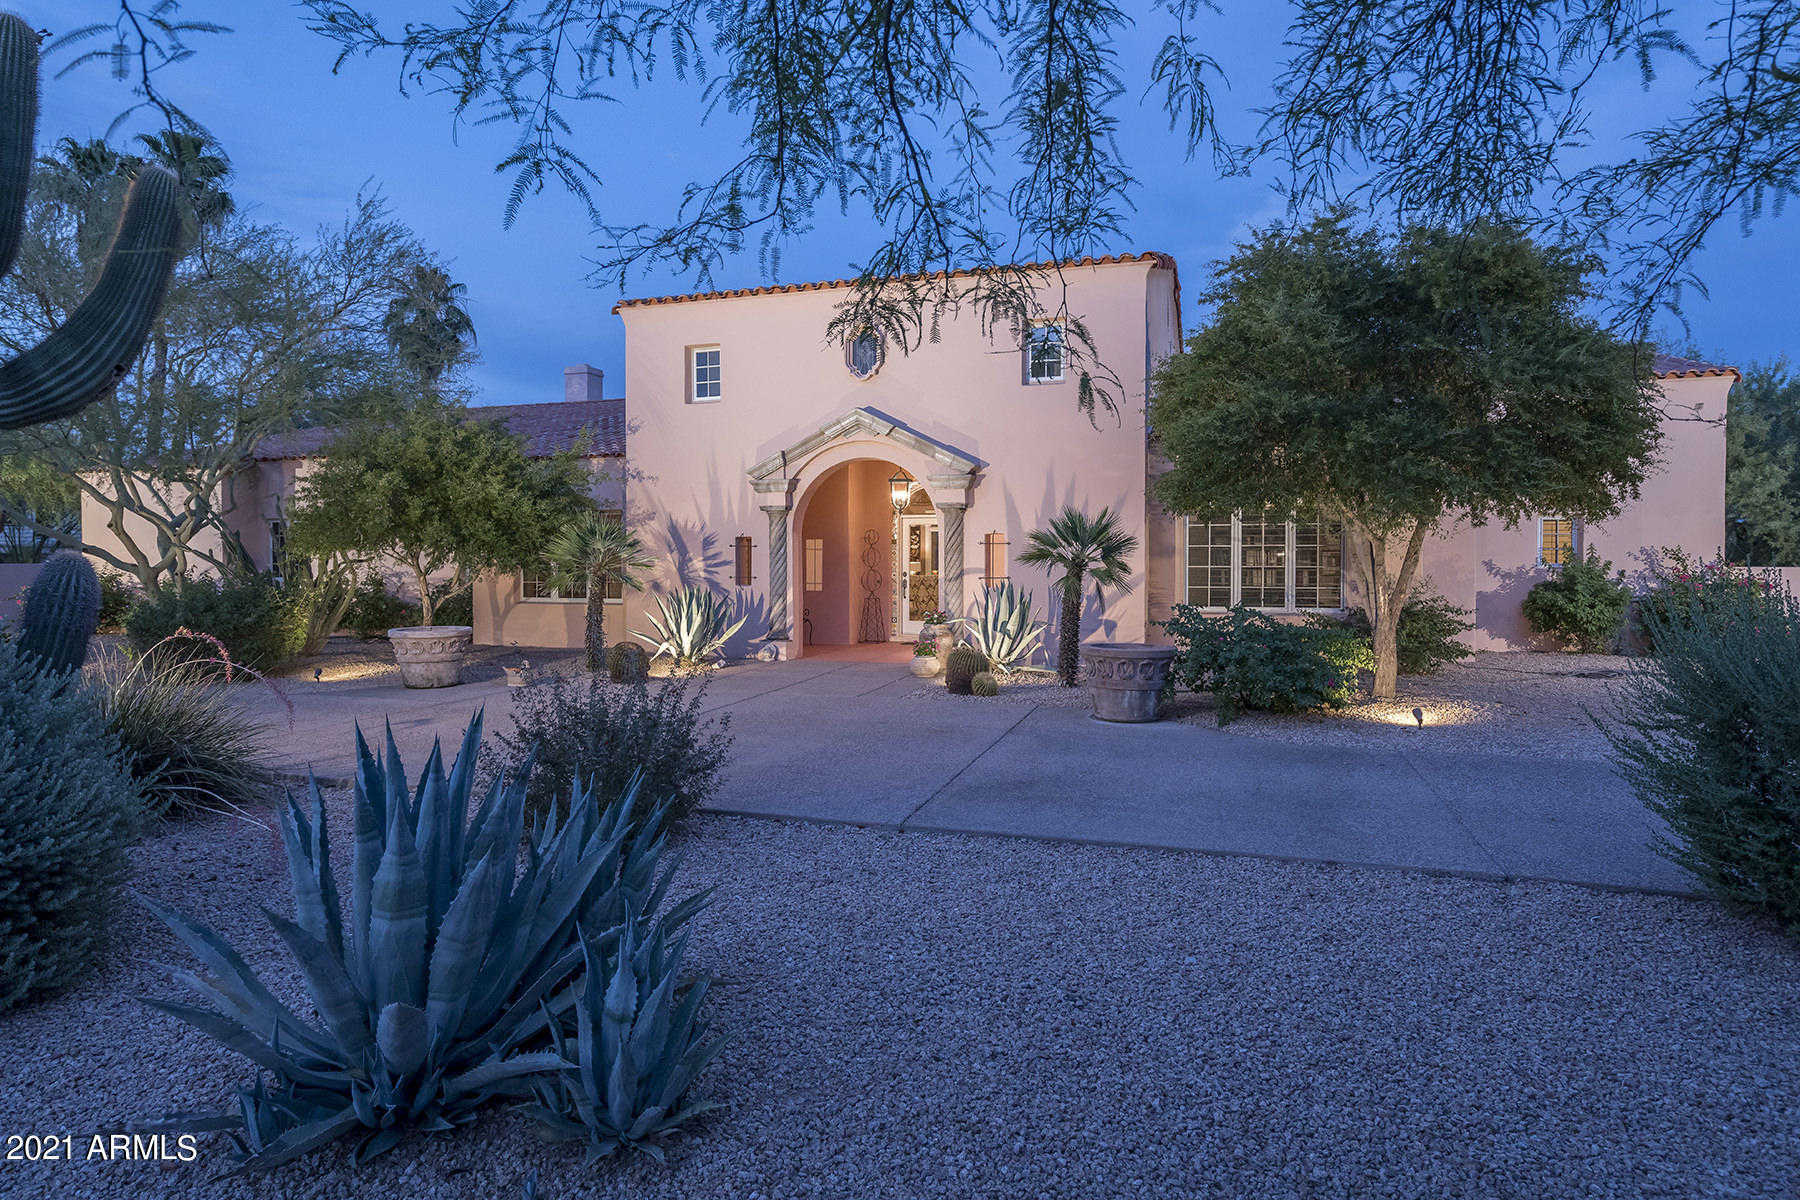 $2,295,000 - 5Br/4Ba - Home for Sale in Paradise, Paradise Valley